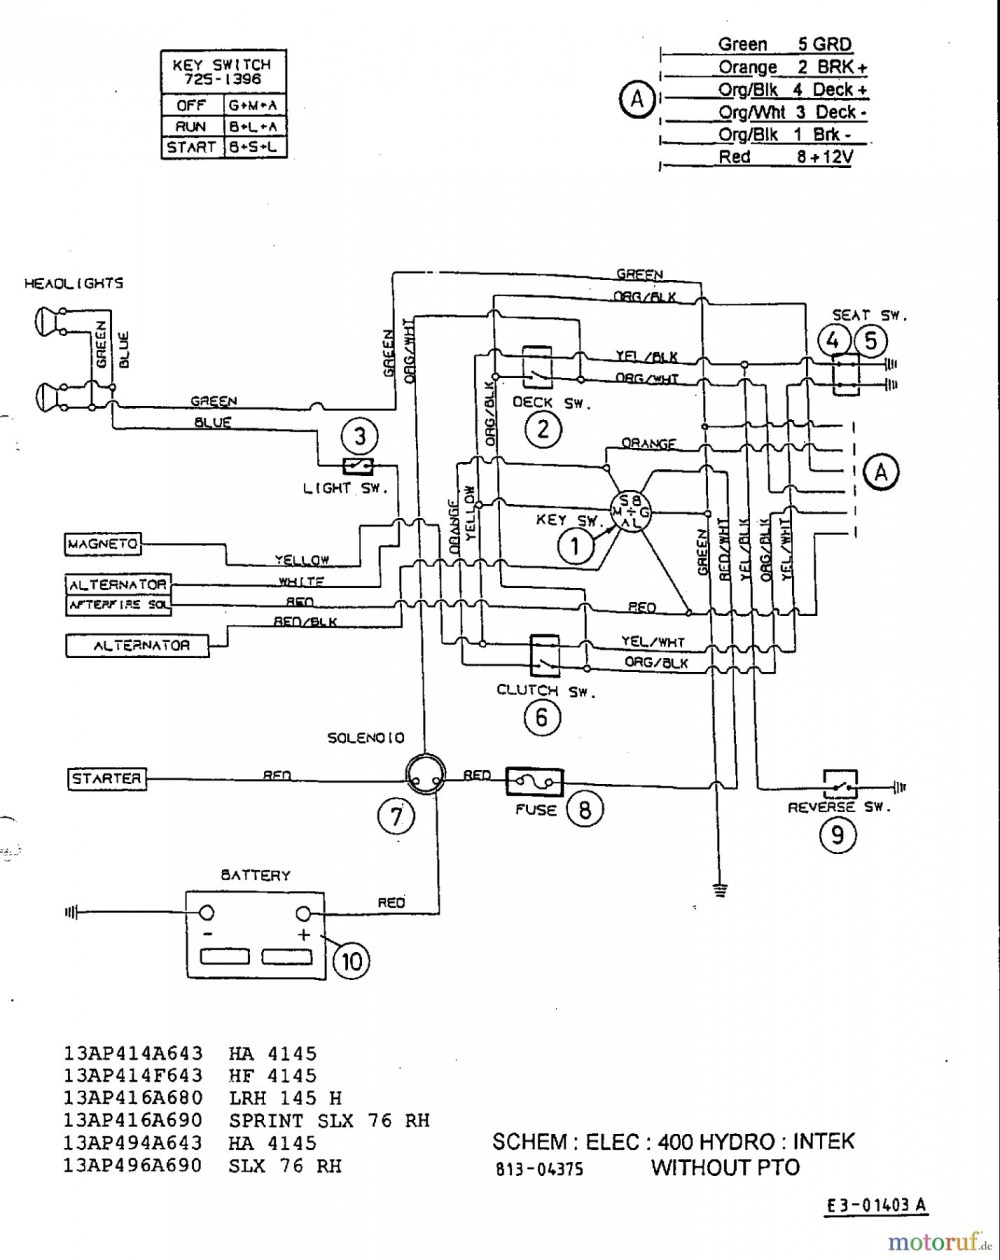 medium resolution of wiring diagram for riding lawn mower wiring diagram schematic columbia lawn tractor wiring diagram lawn tractor wiring diagram